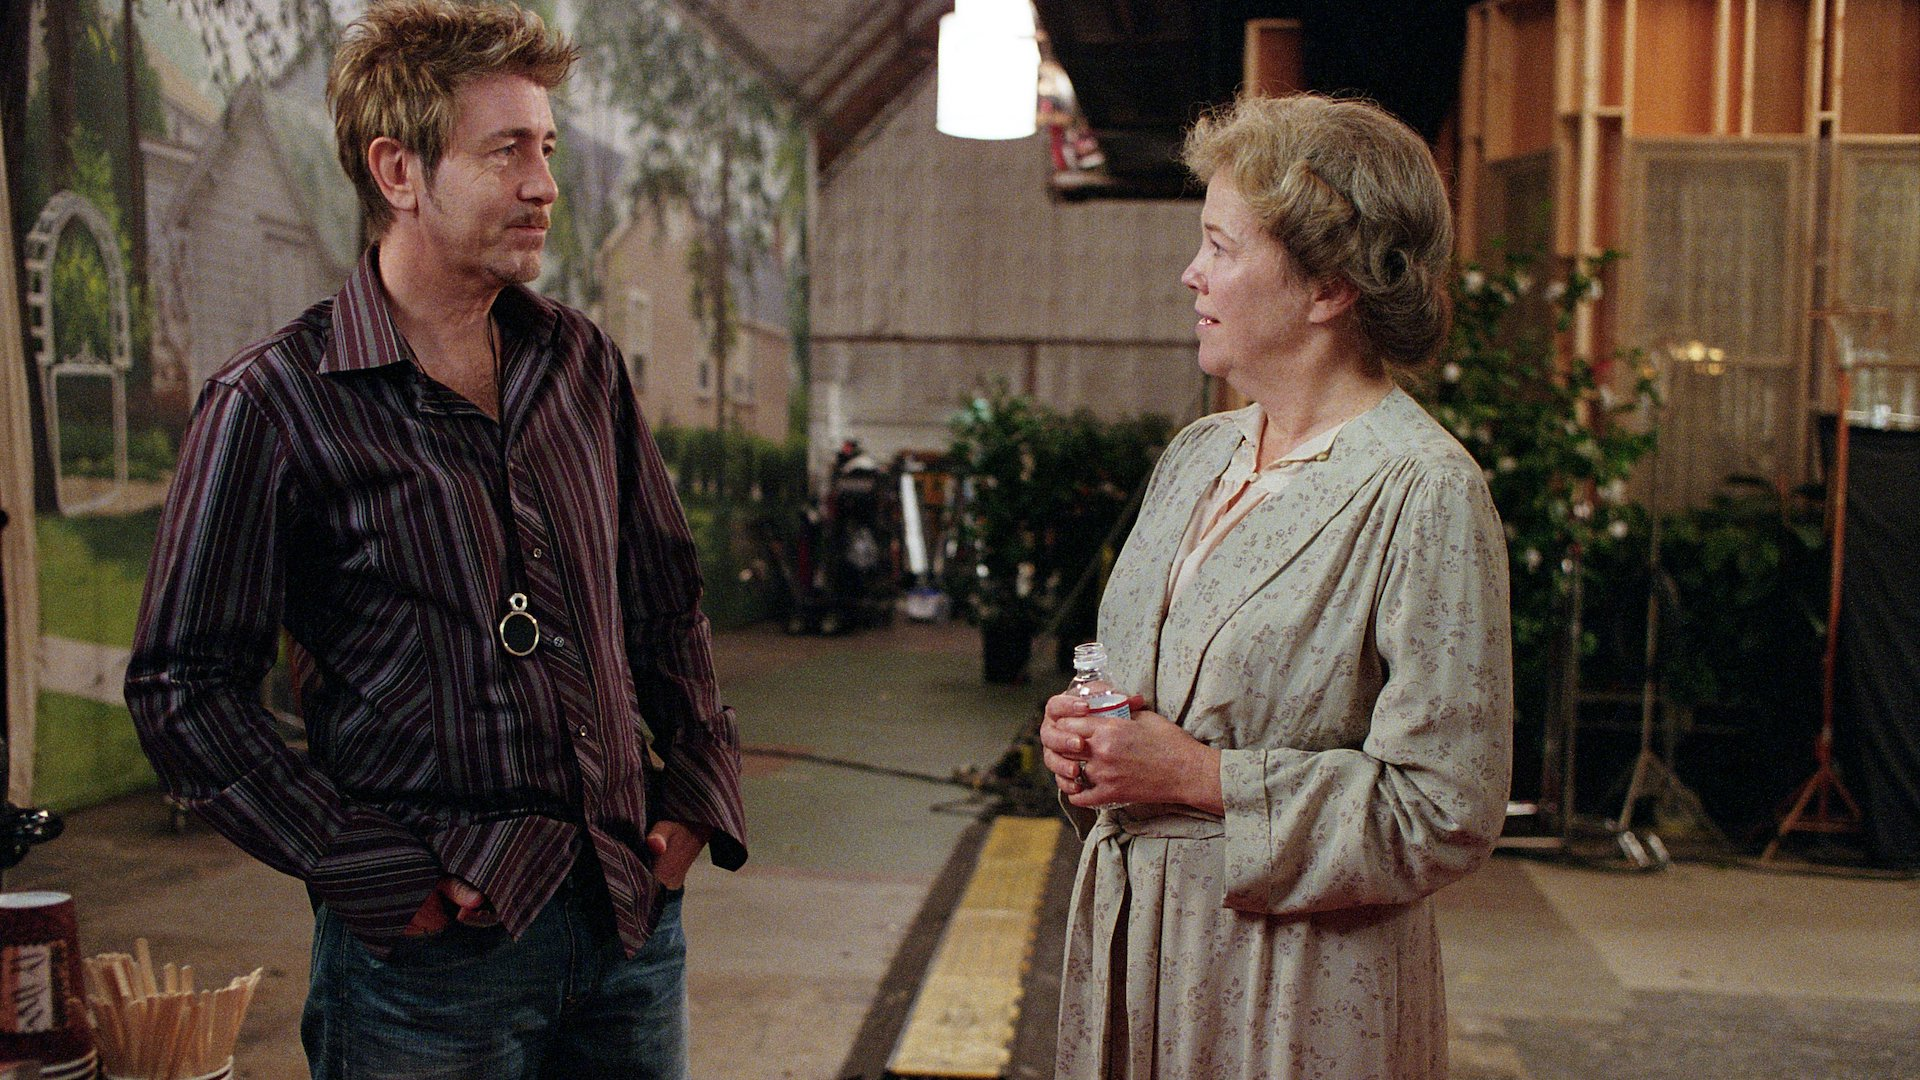 Jim Piddock (left) and Catherine O'Hara (right) in For Your Consideration (2006).